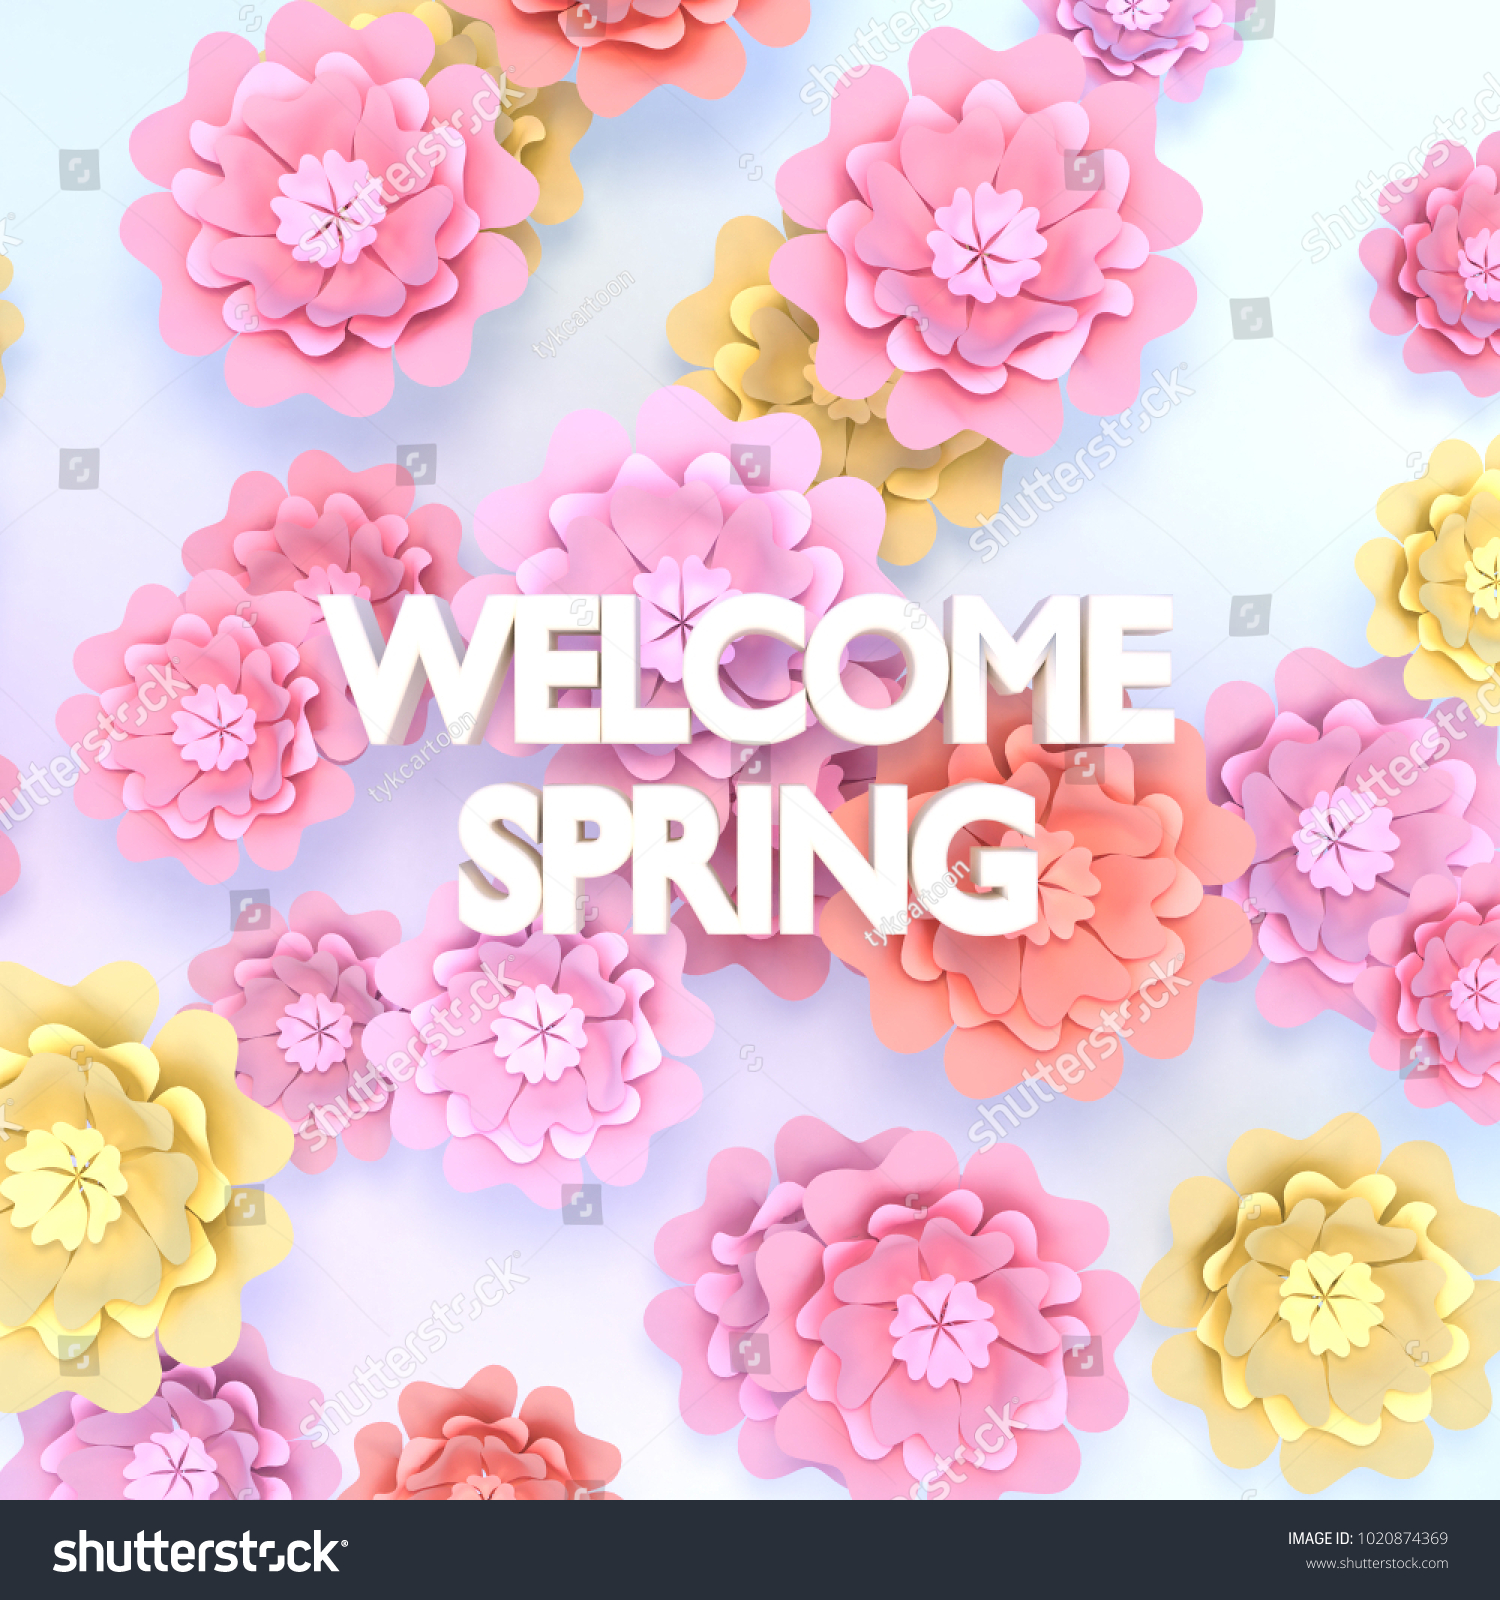 Beautiful Spring Flowers Paper Crafts Welcome Stock Illustration